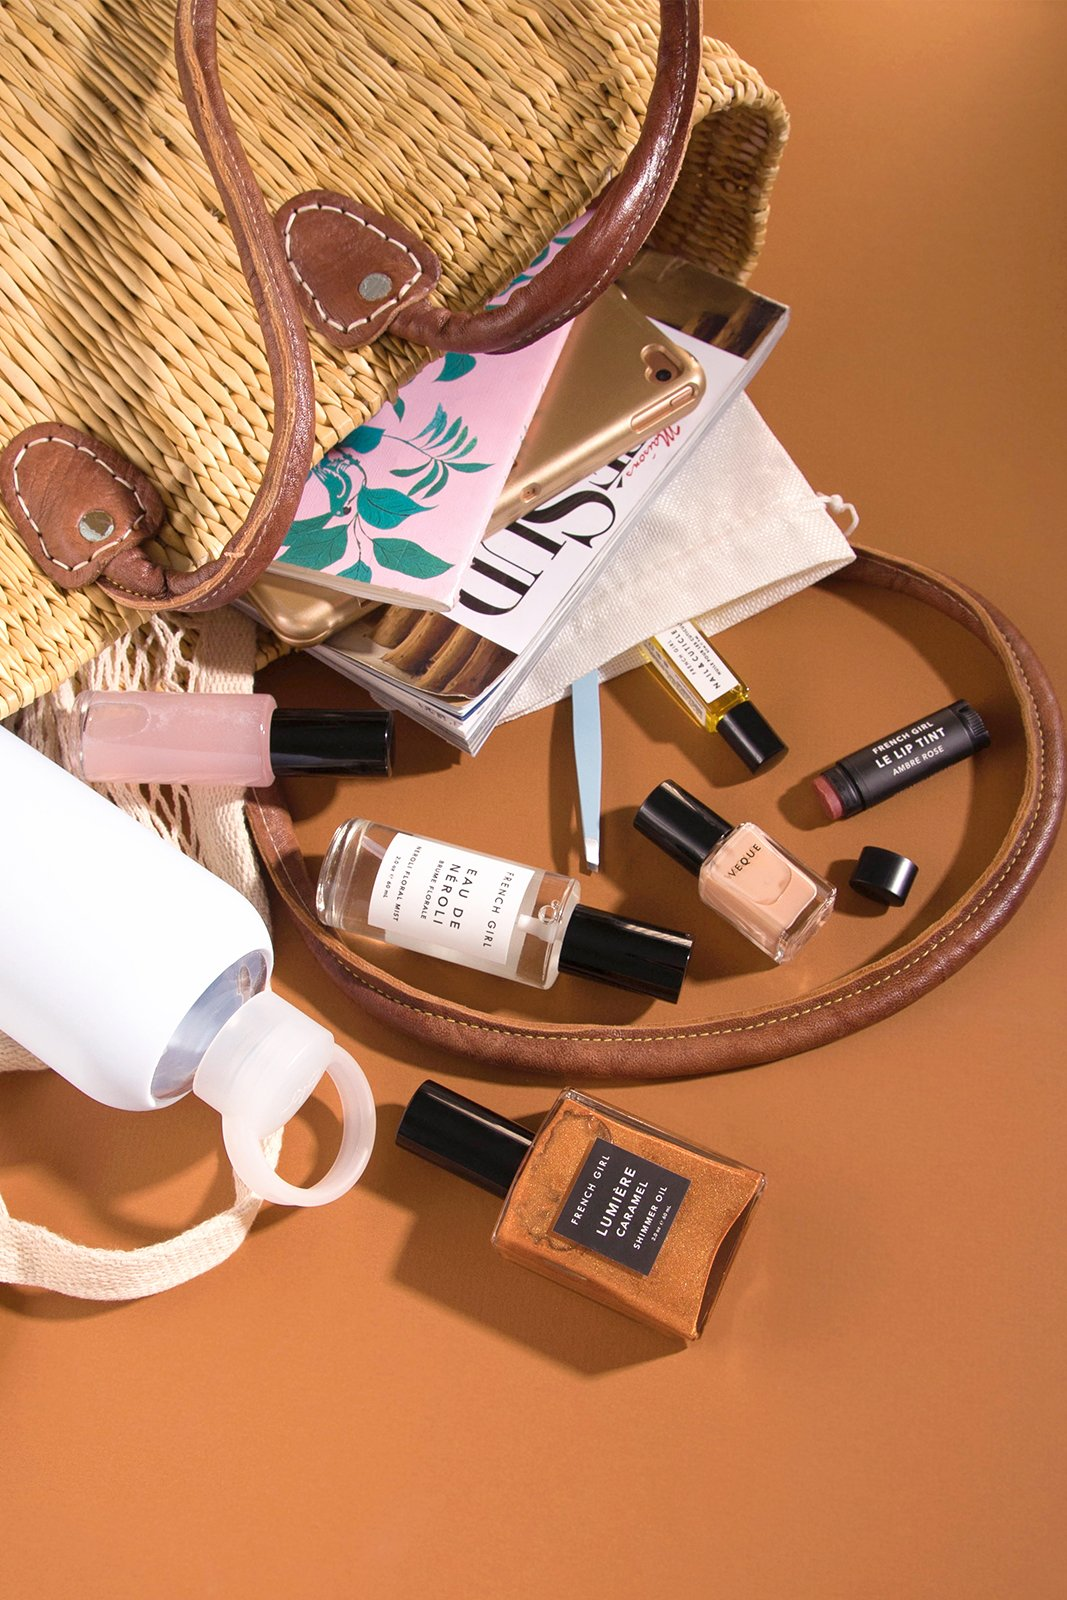 What's In Your BaG - for Antidote